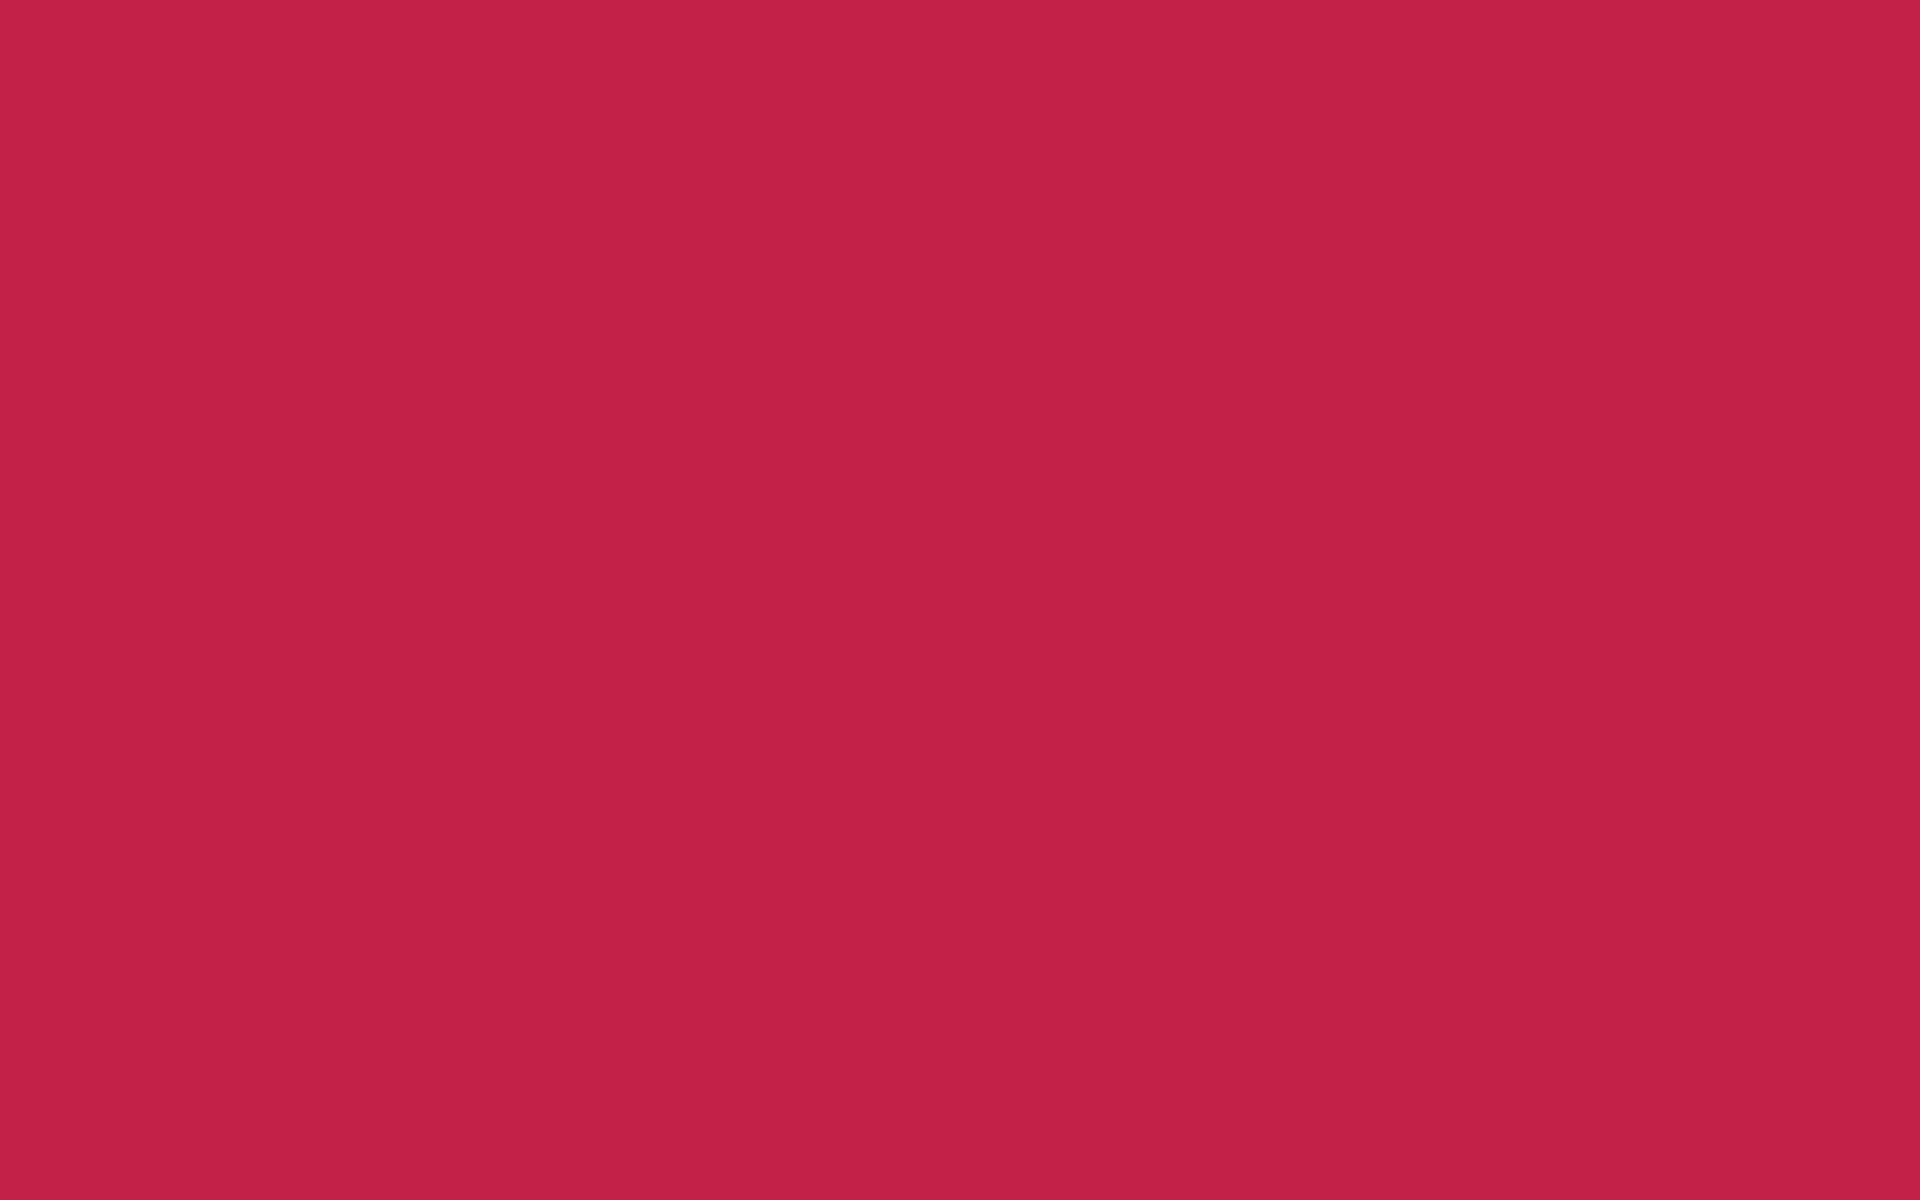 1920x1200 Bright Maroon Solid Color Background